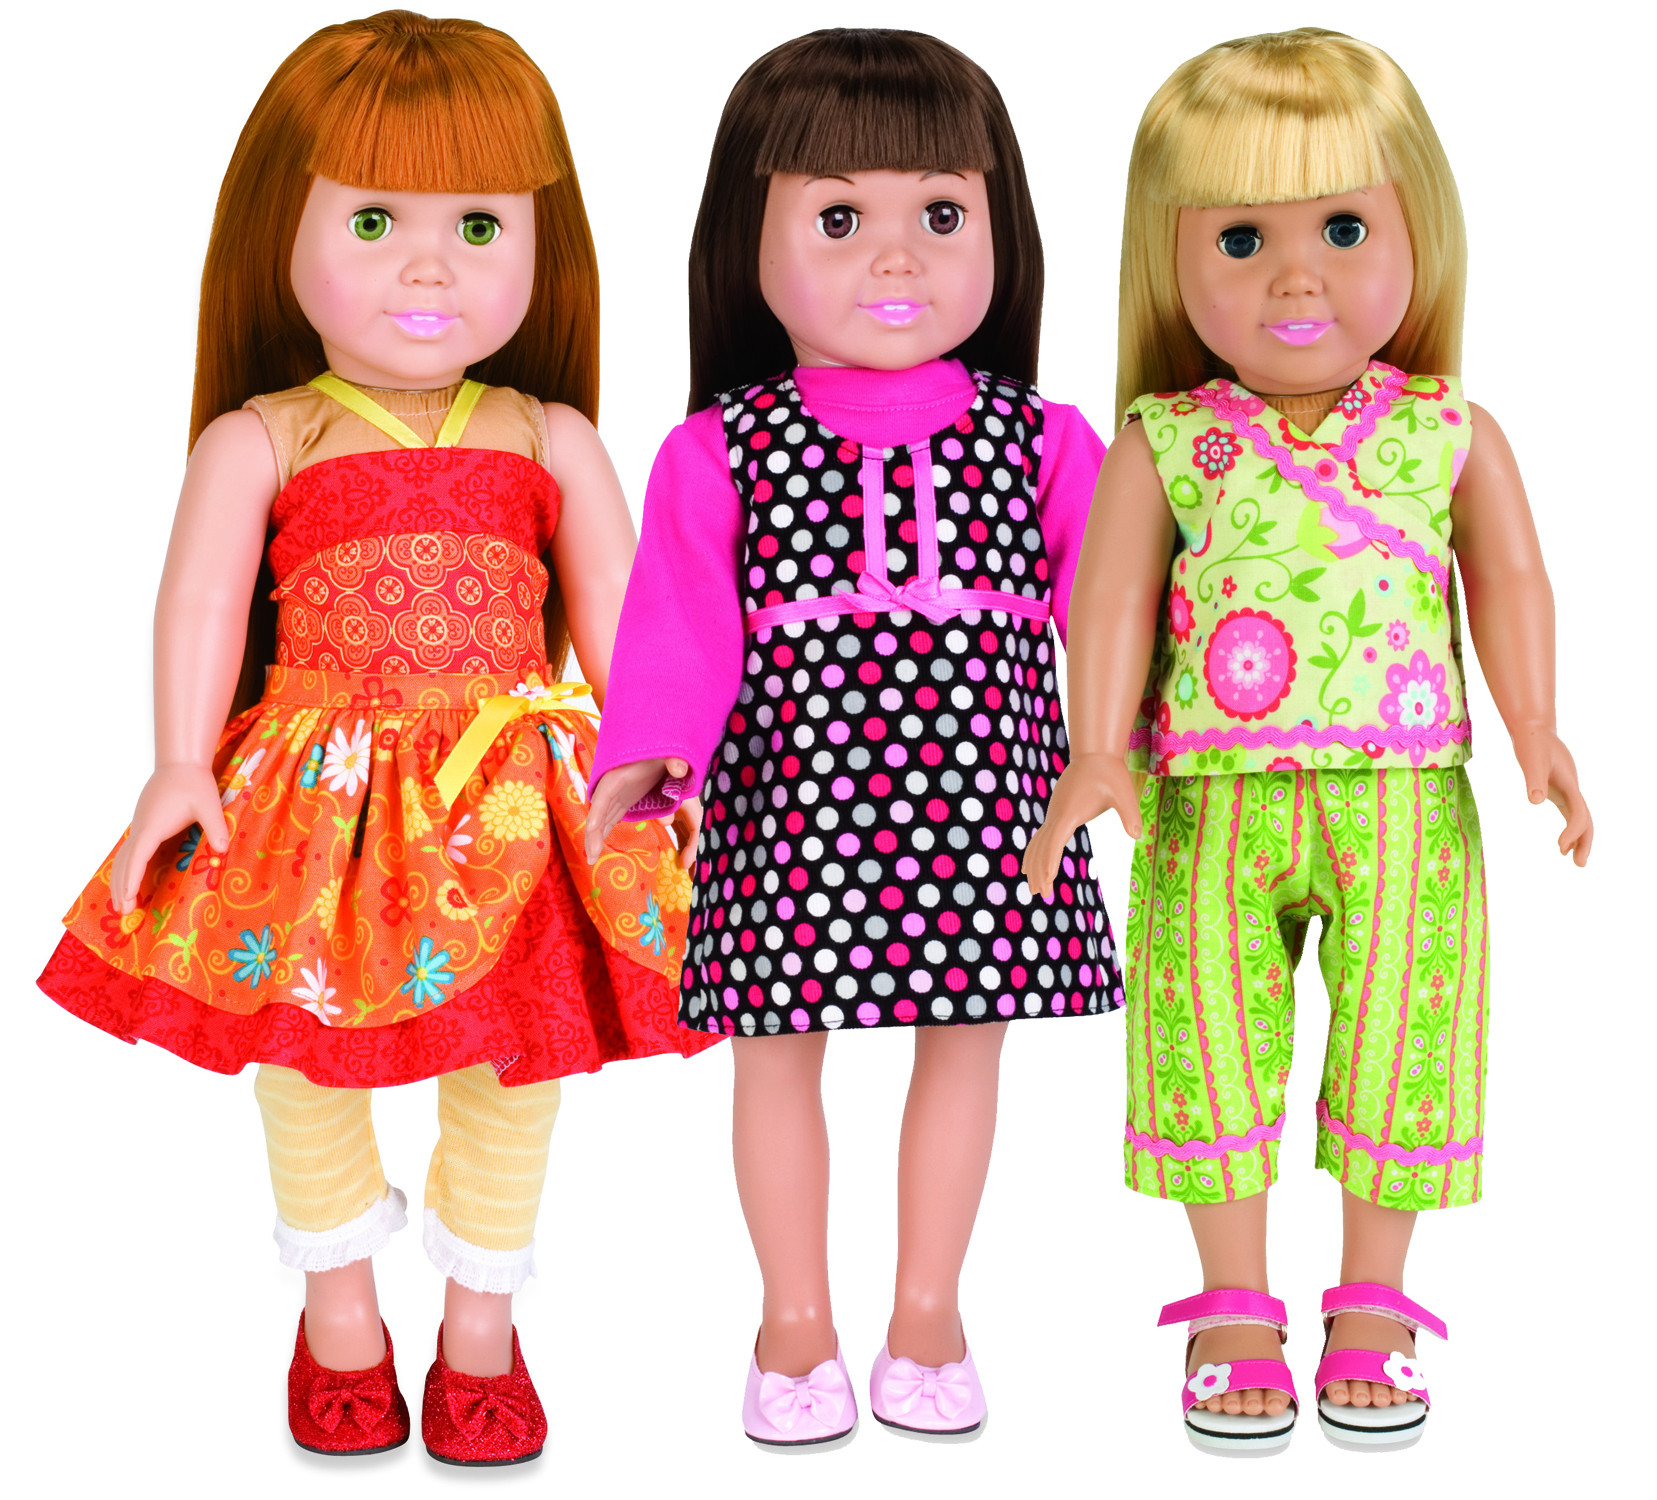 SEWING PATTERNS FOR DOLL CLOTHES FREE PATTERNS